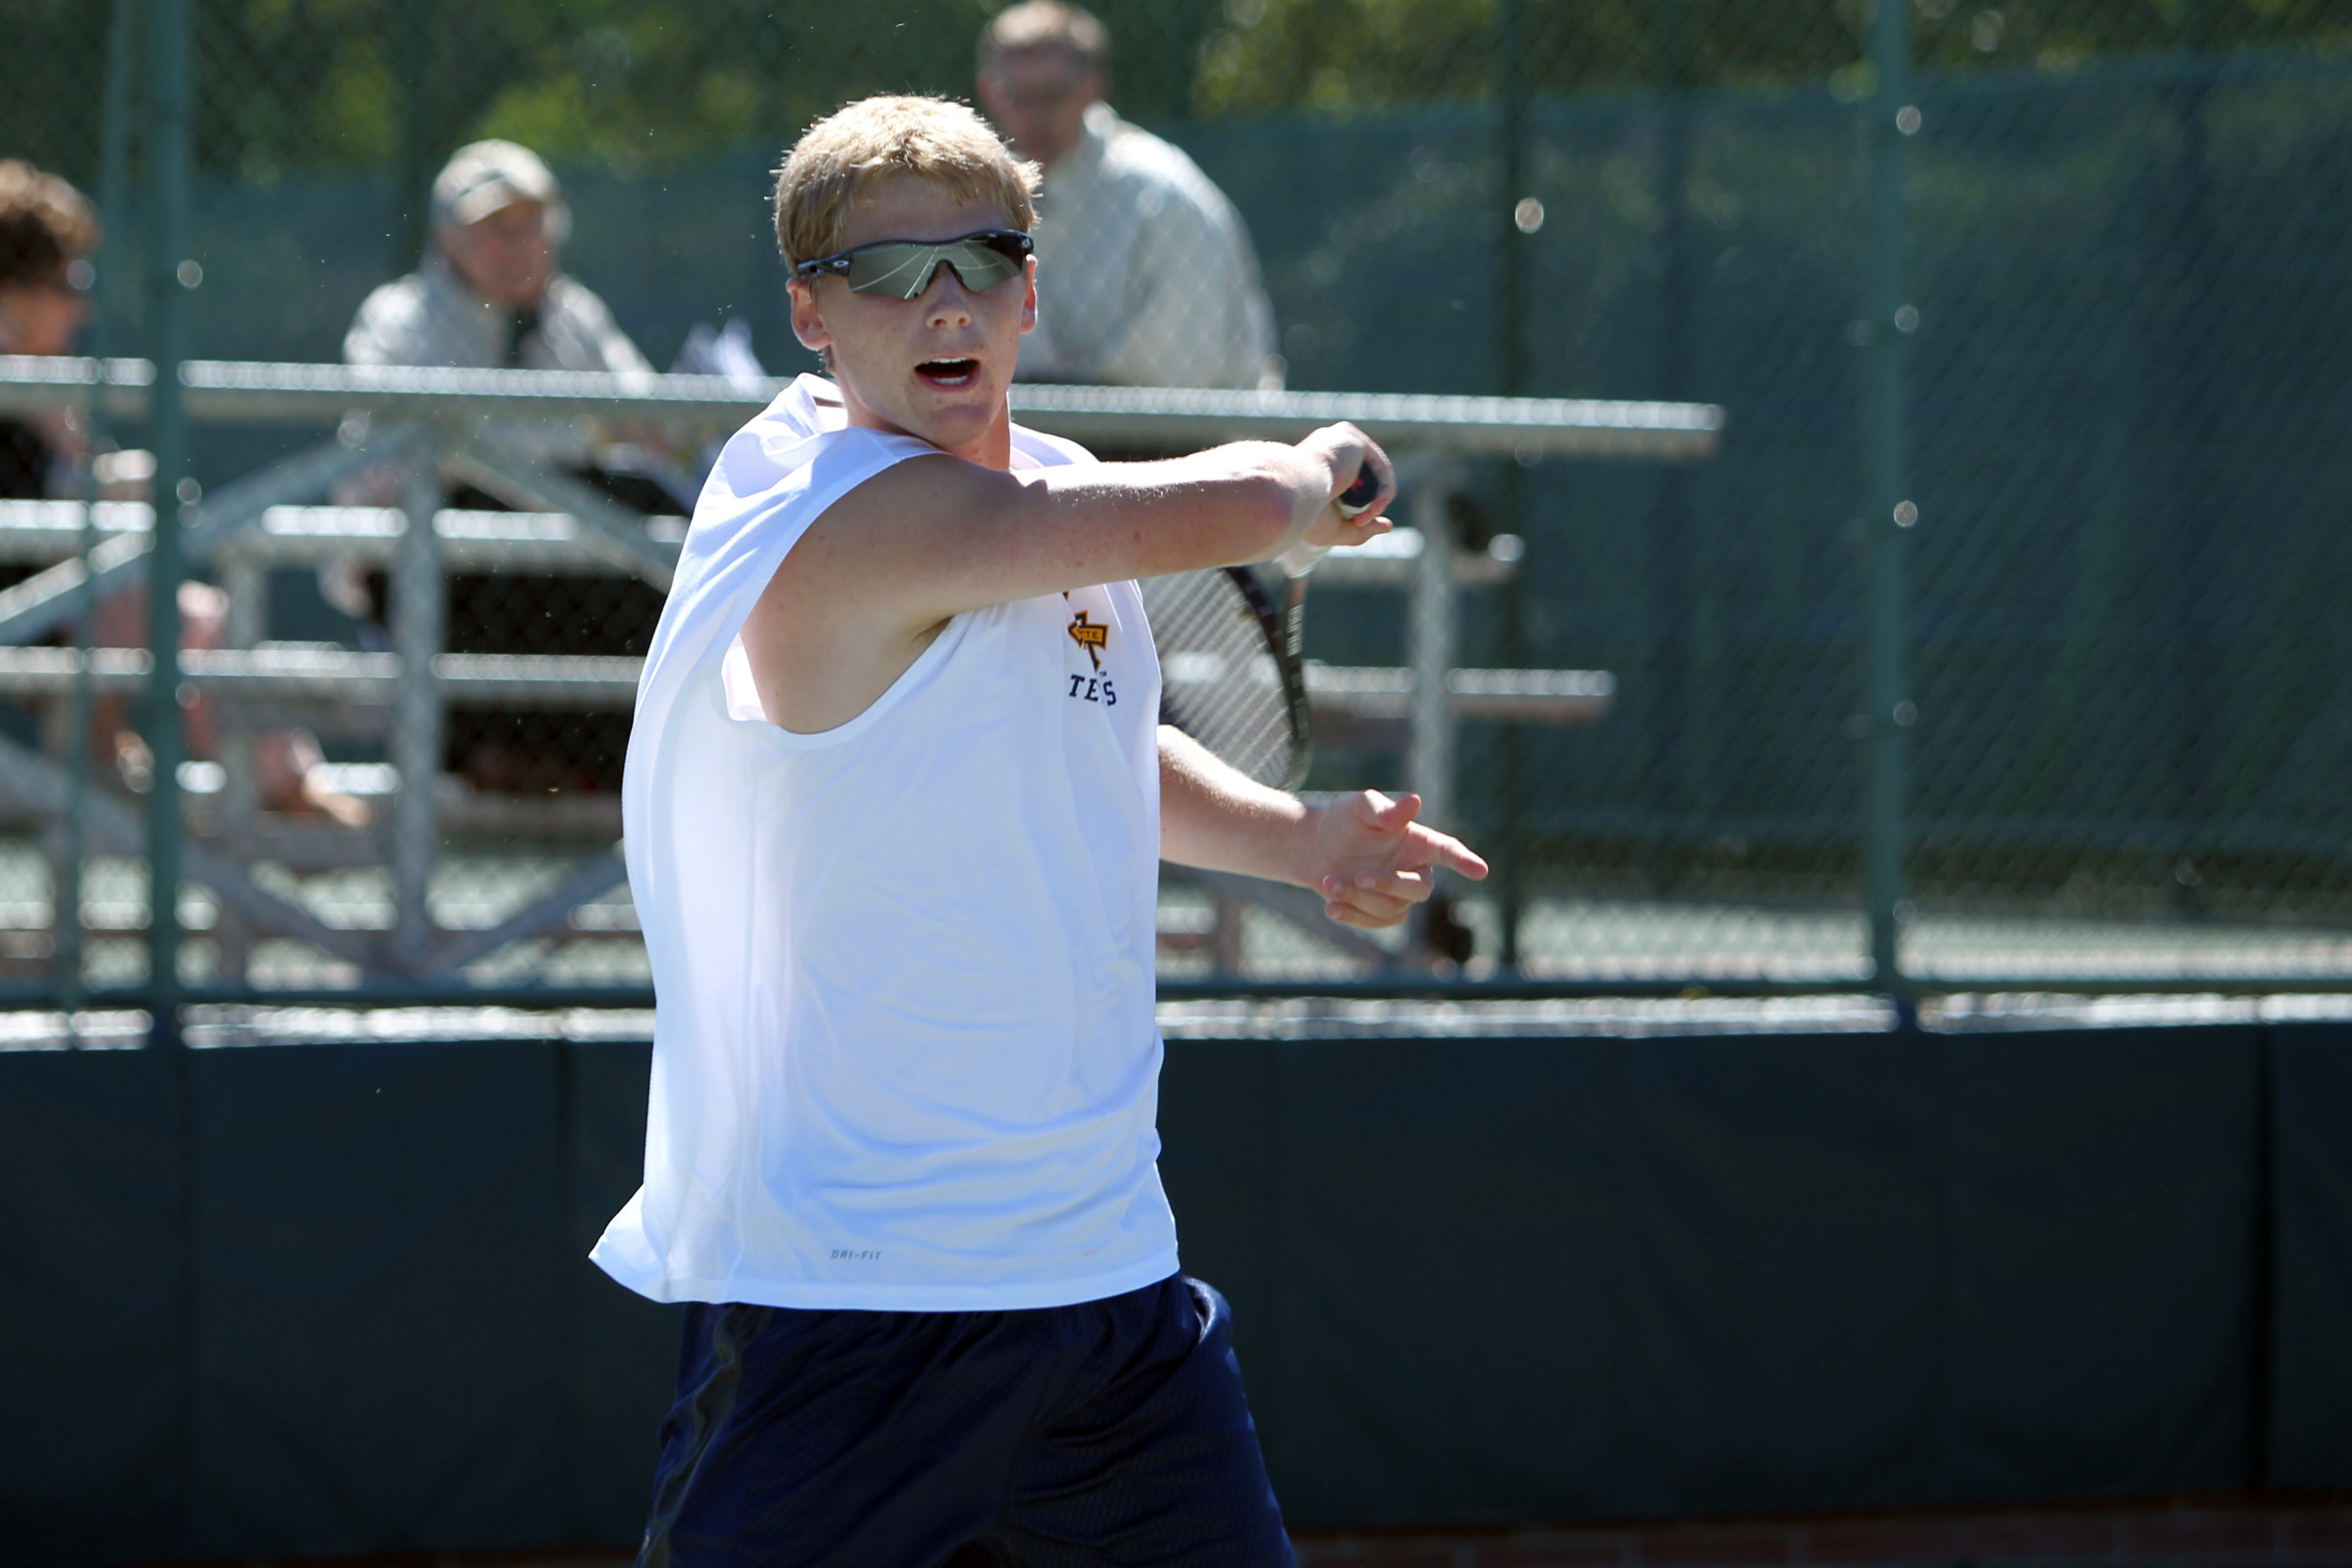 Freshman Nick Dykema will play for his second tourney title on Sunday.